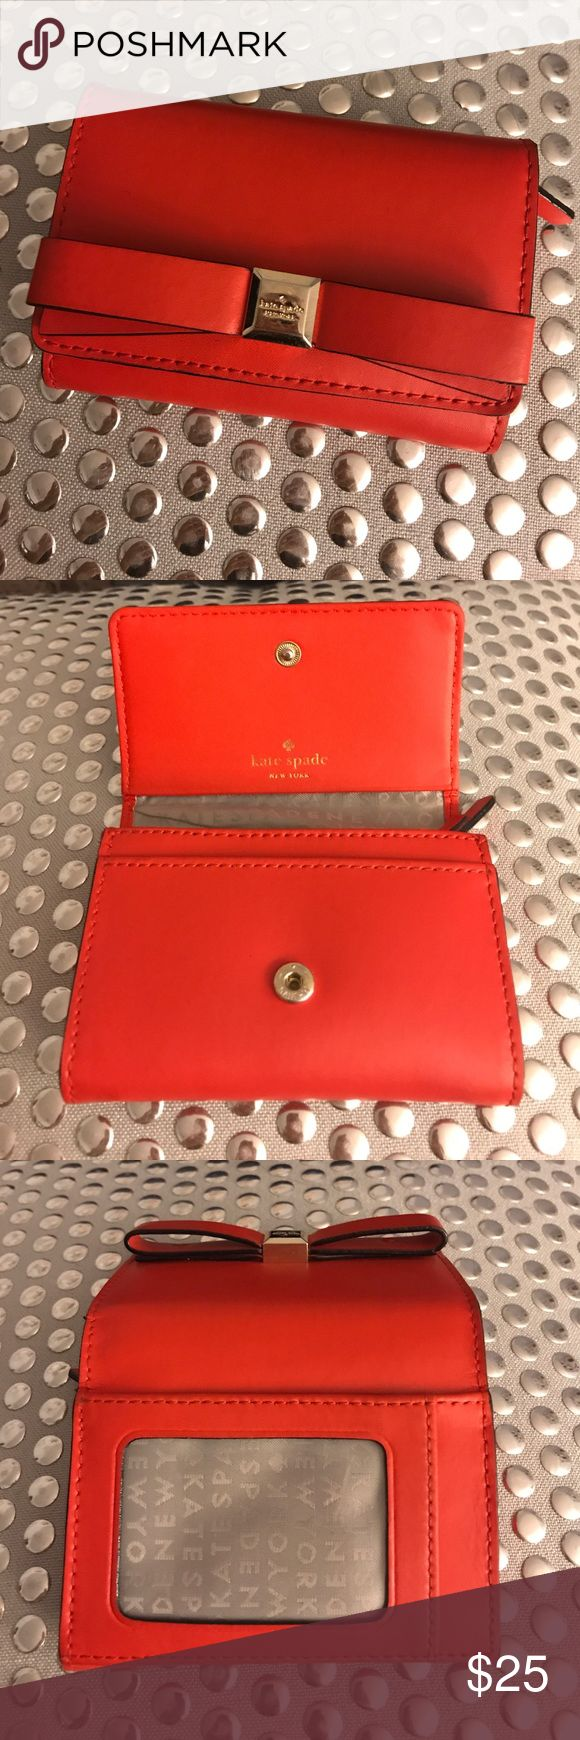 Kate Spade Wallet Small Kate Spade wallet. Perfect size for smaller bag or cross body. Fits a good amount of cards, but at fraction of size of envelope wallet! kate spade Bags Wallets